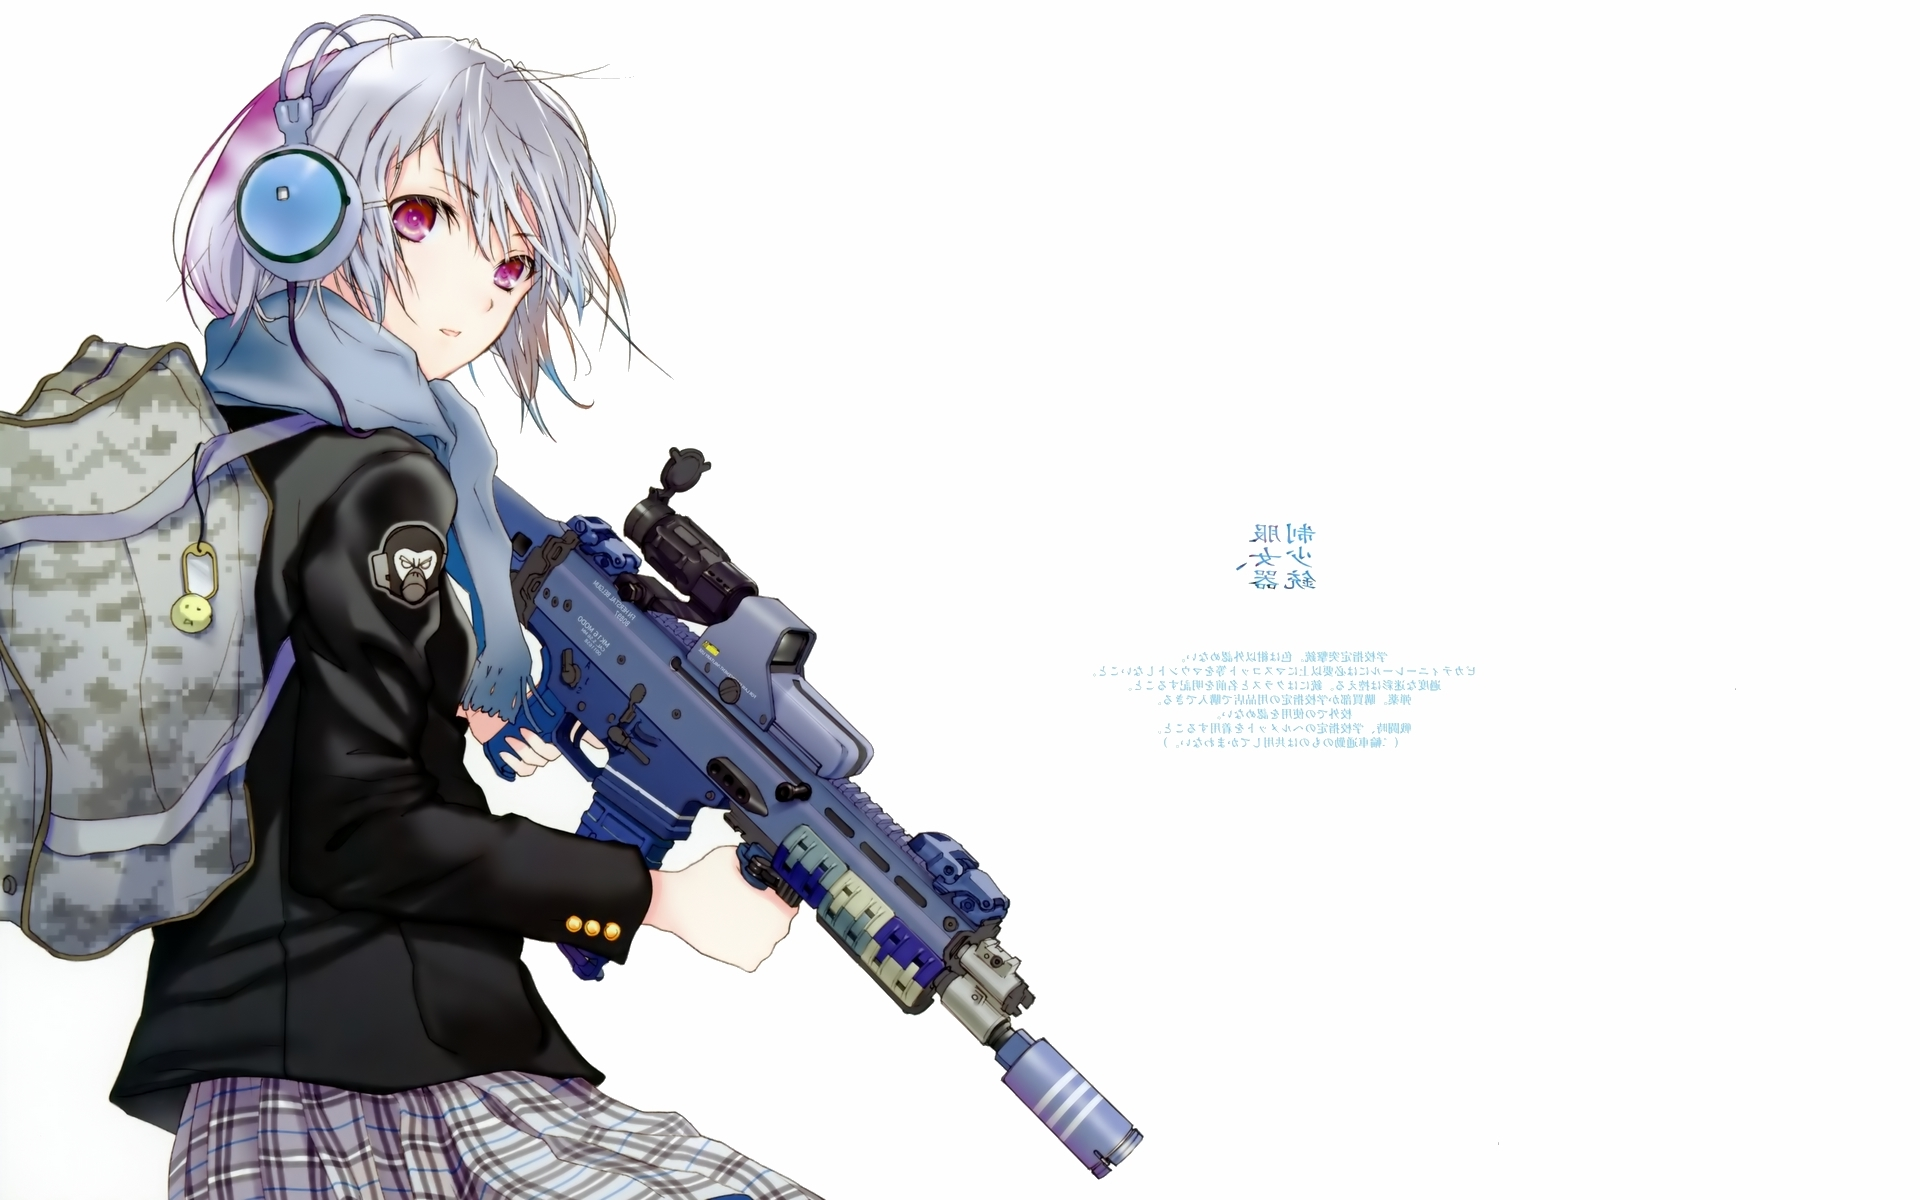 Guns anime girl